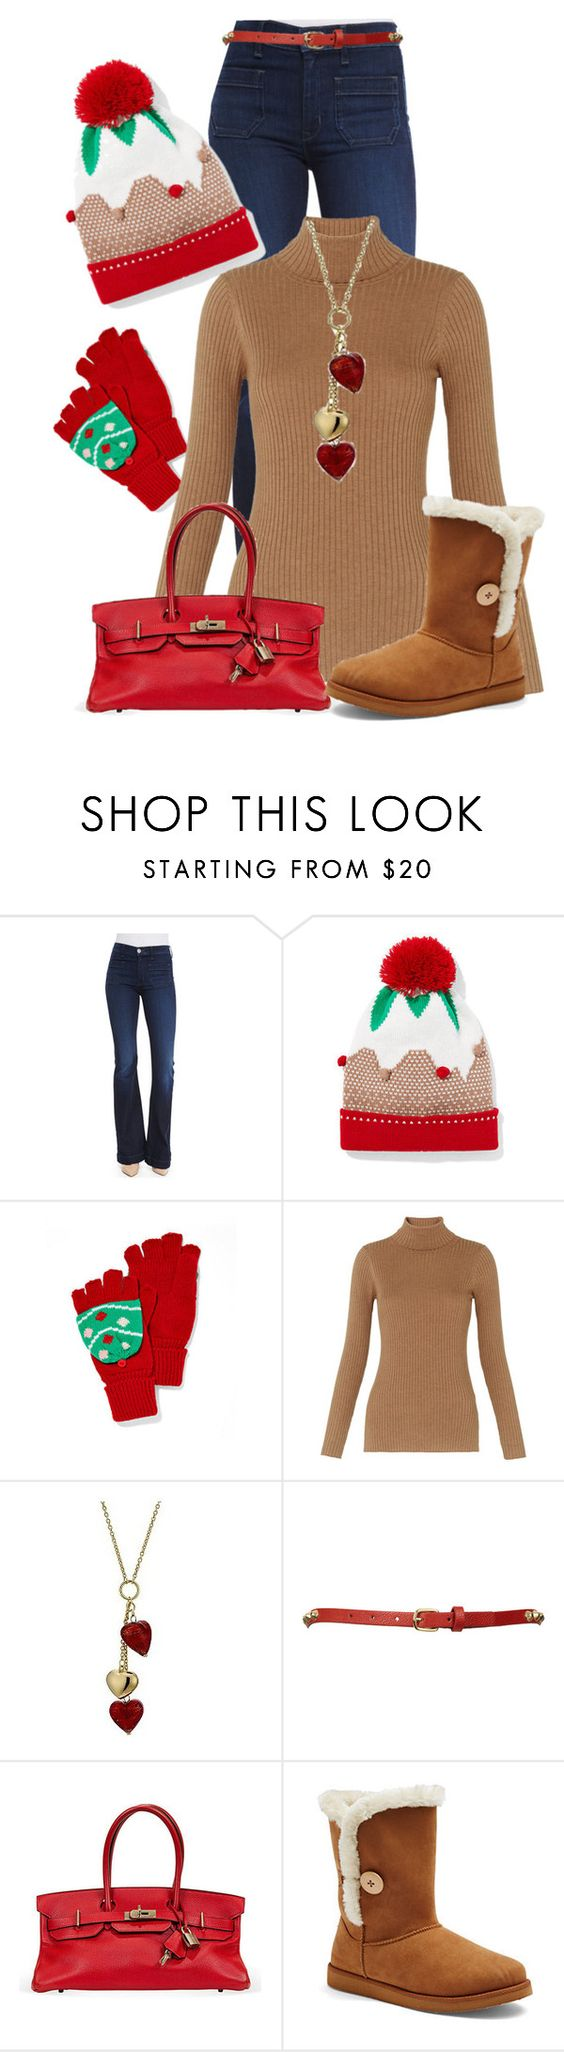 """""""Untitled #12485"""" by nanette-253 ❤ liked on Polyvore featuring Hudson, New York & Company, Whistles, Topshop and Hermès"""